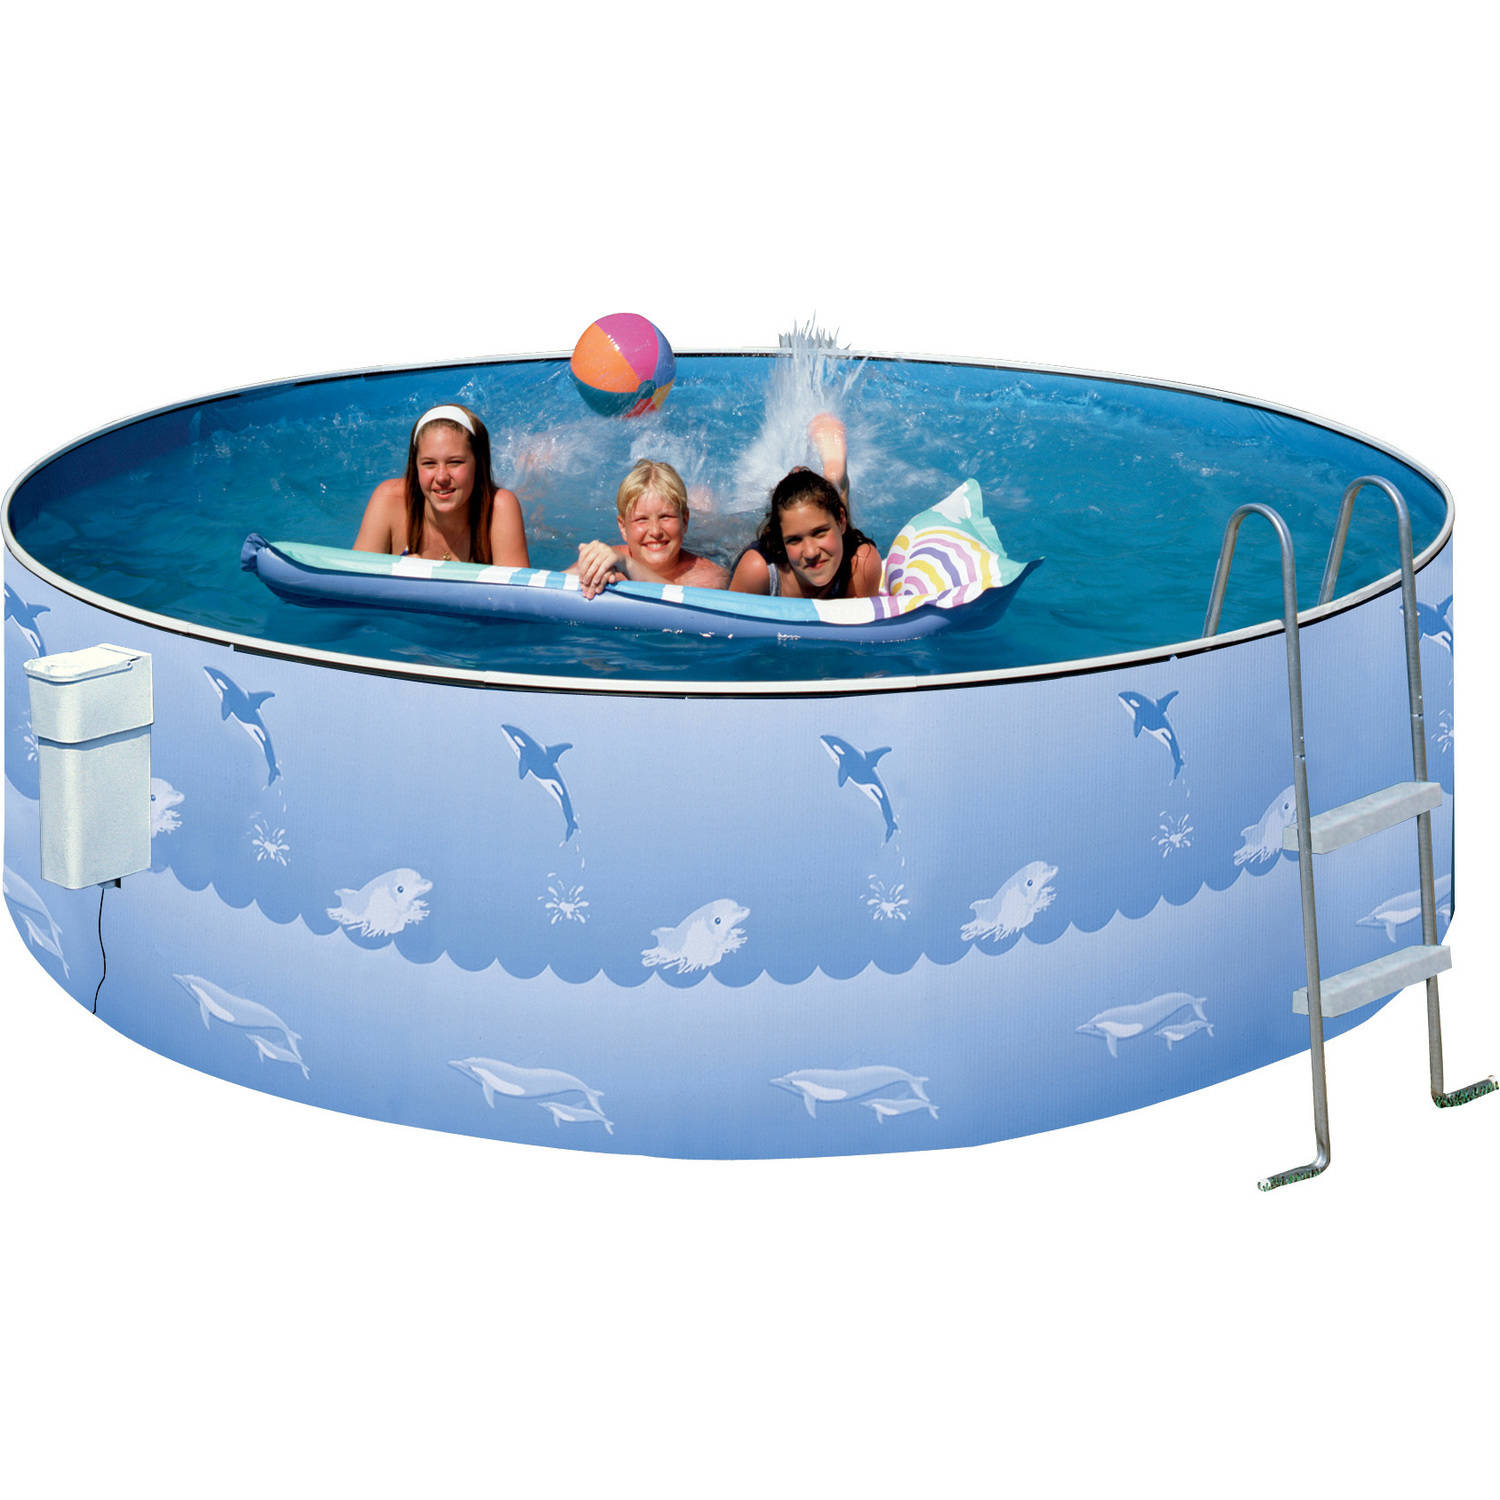 "Heritage Round 12' x 36"" Above Ground Swimming Pool"